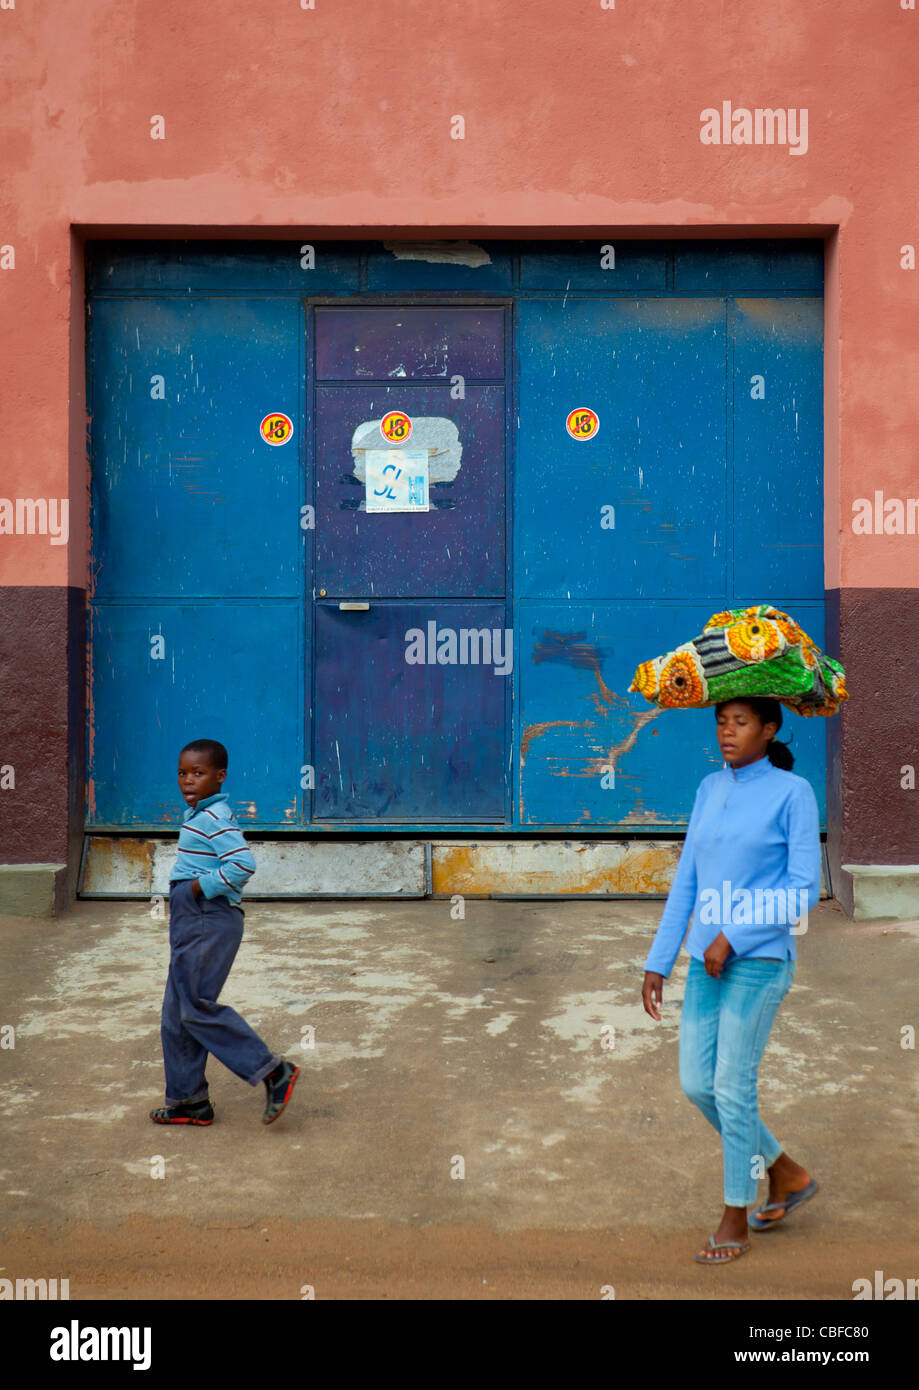 Boy And Woman Carrying A Load On Her Head In Lubango Streets, Angola - Stock Image